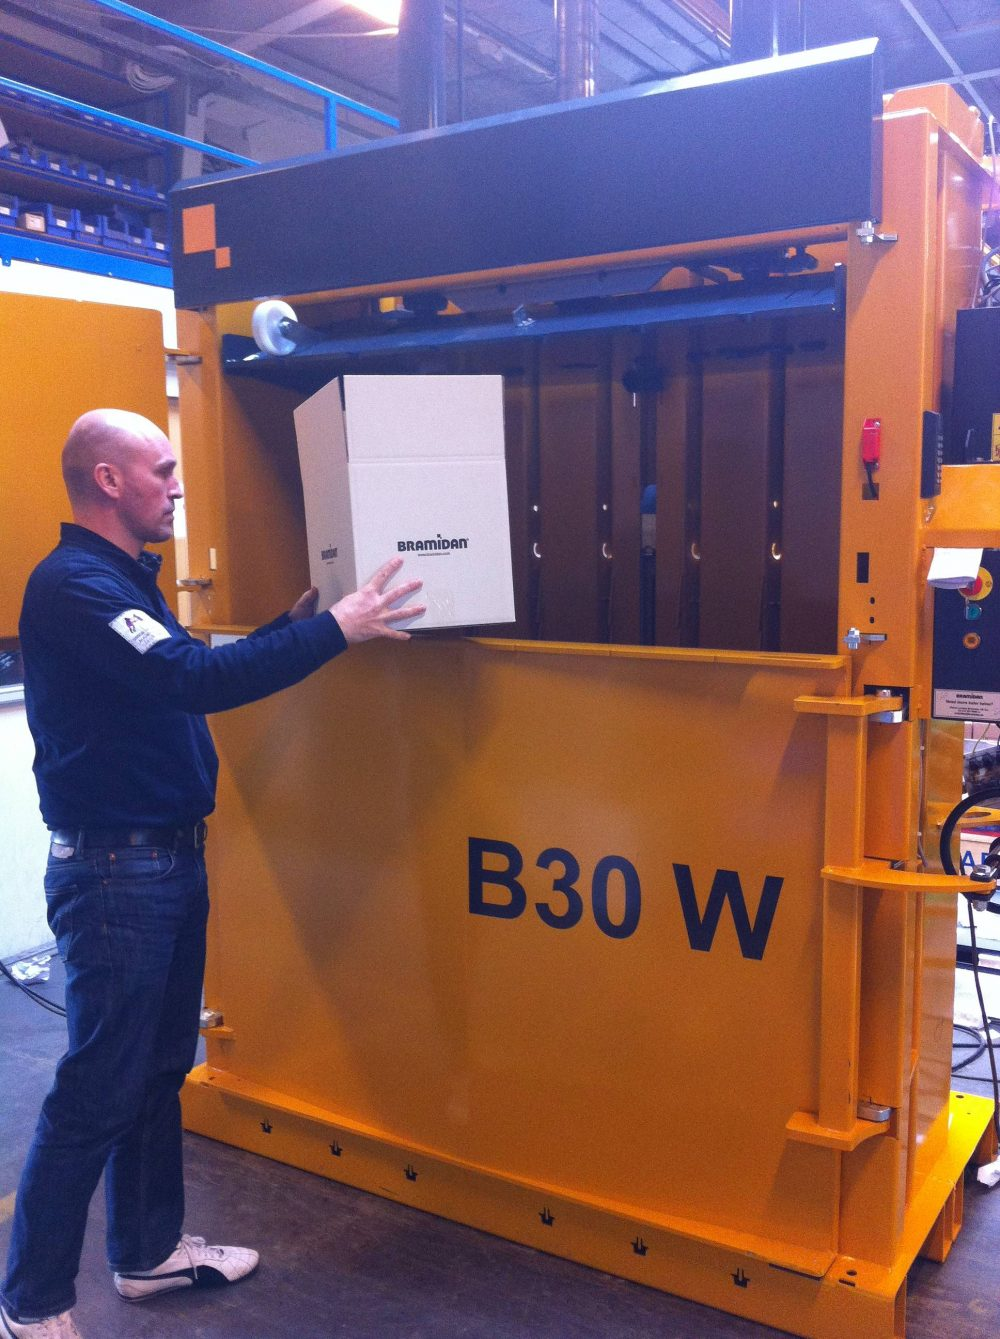 Bramidan B30W waste baler supplied by Kenburn